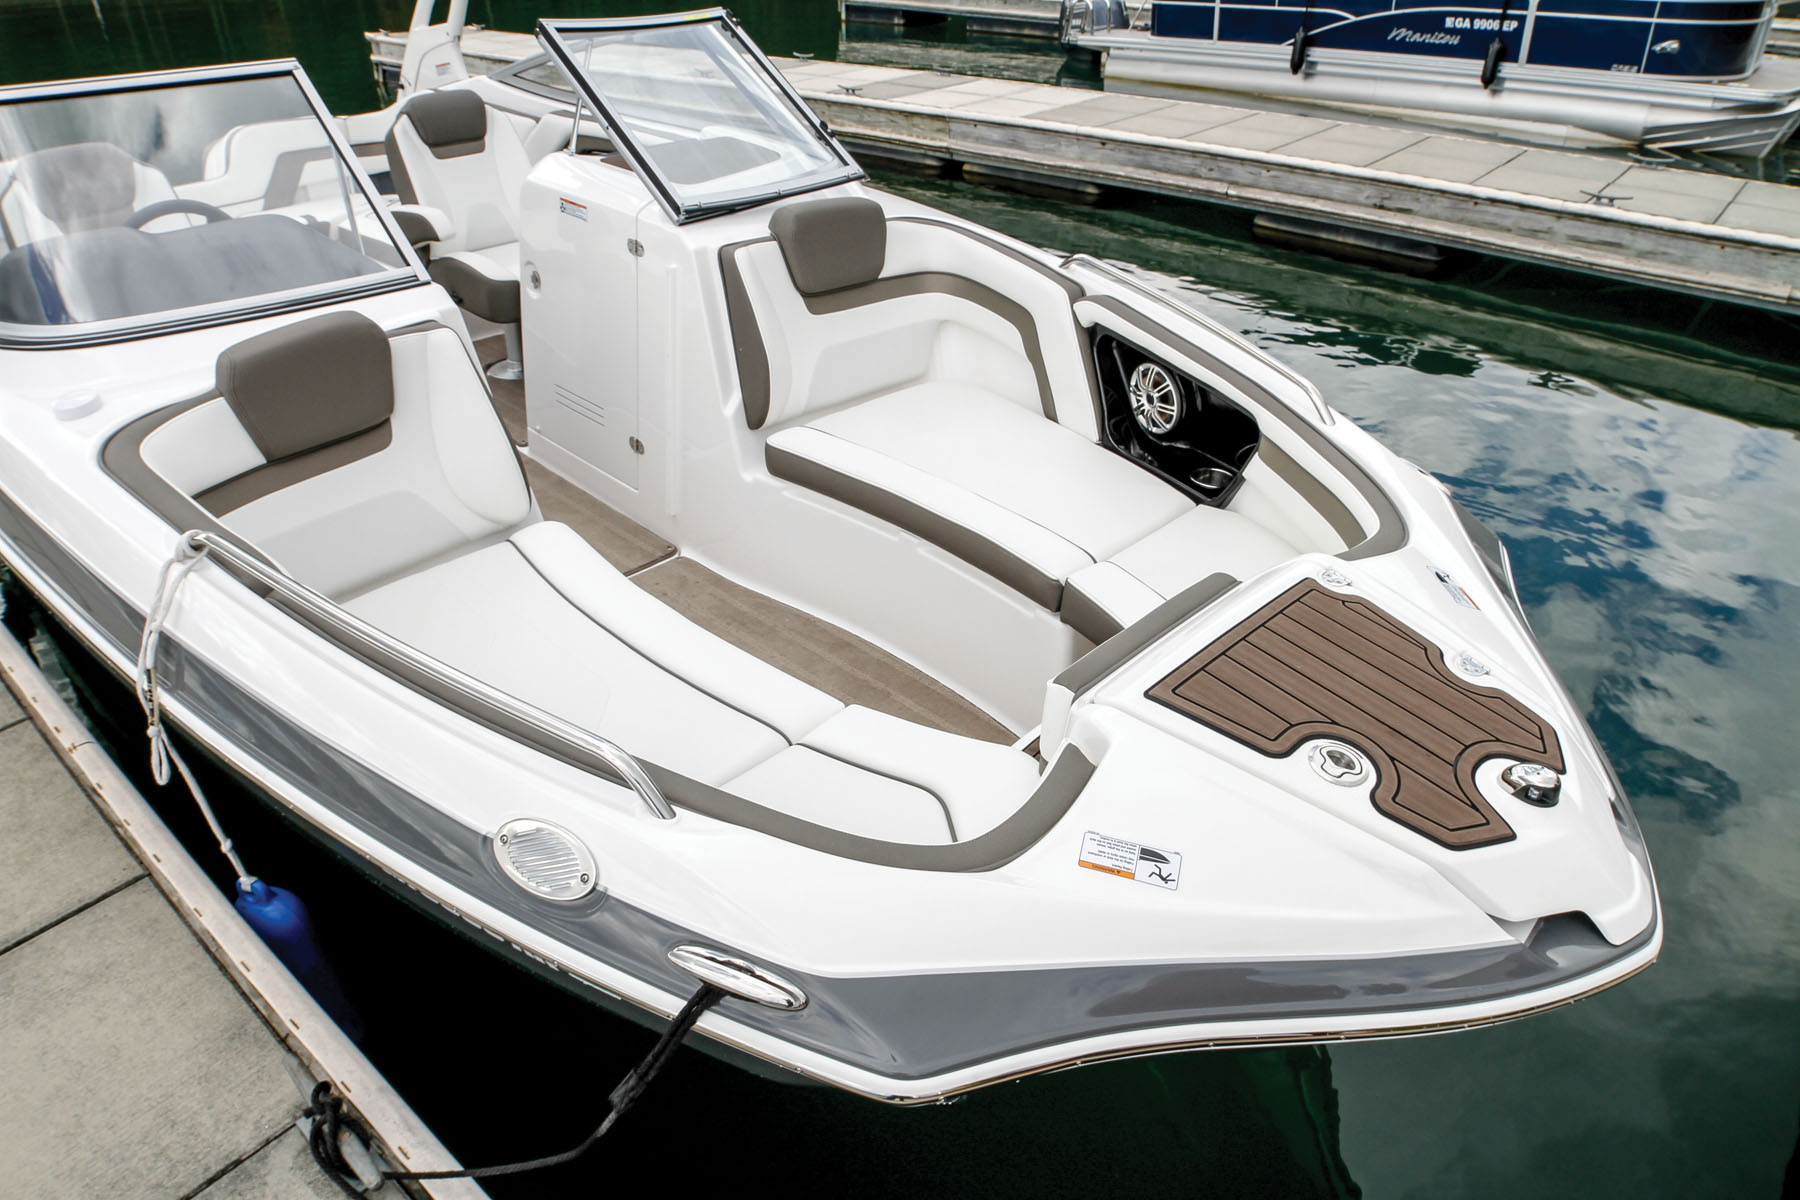 Yamaha 242 Limited S Boats For Sale Boat Trader